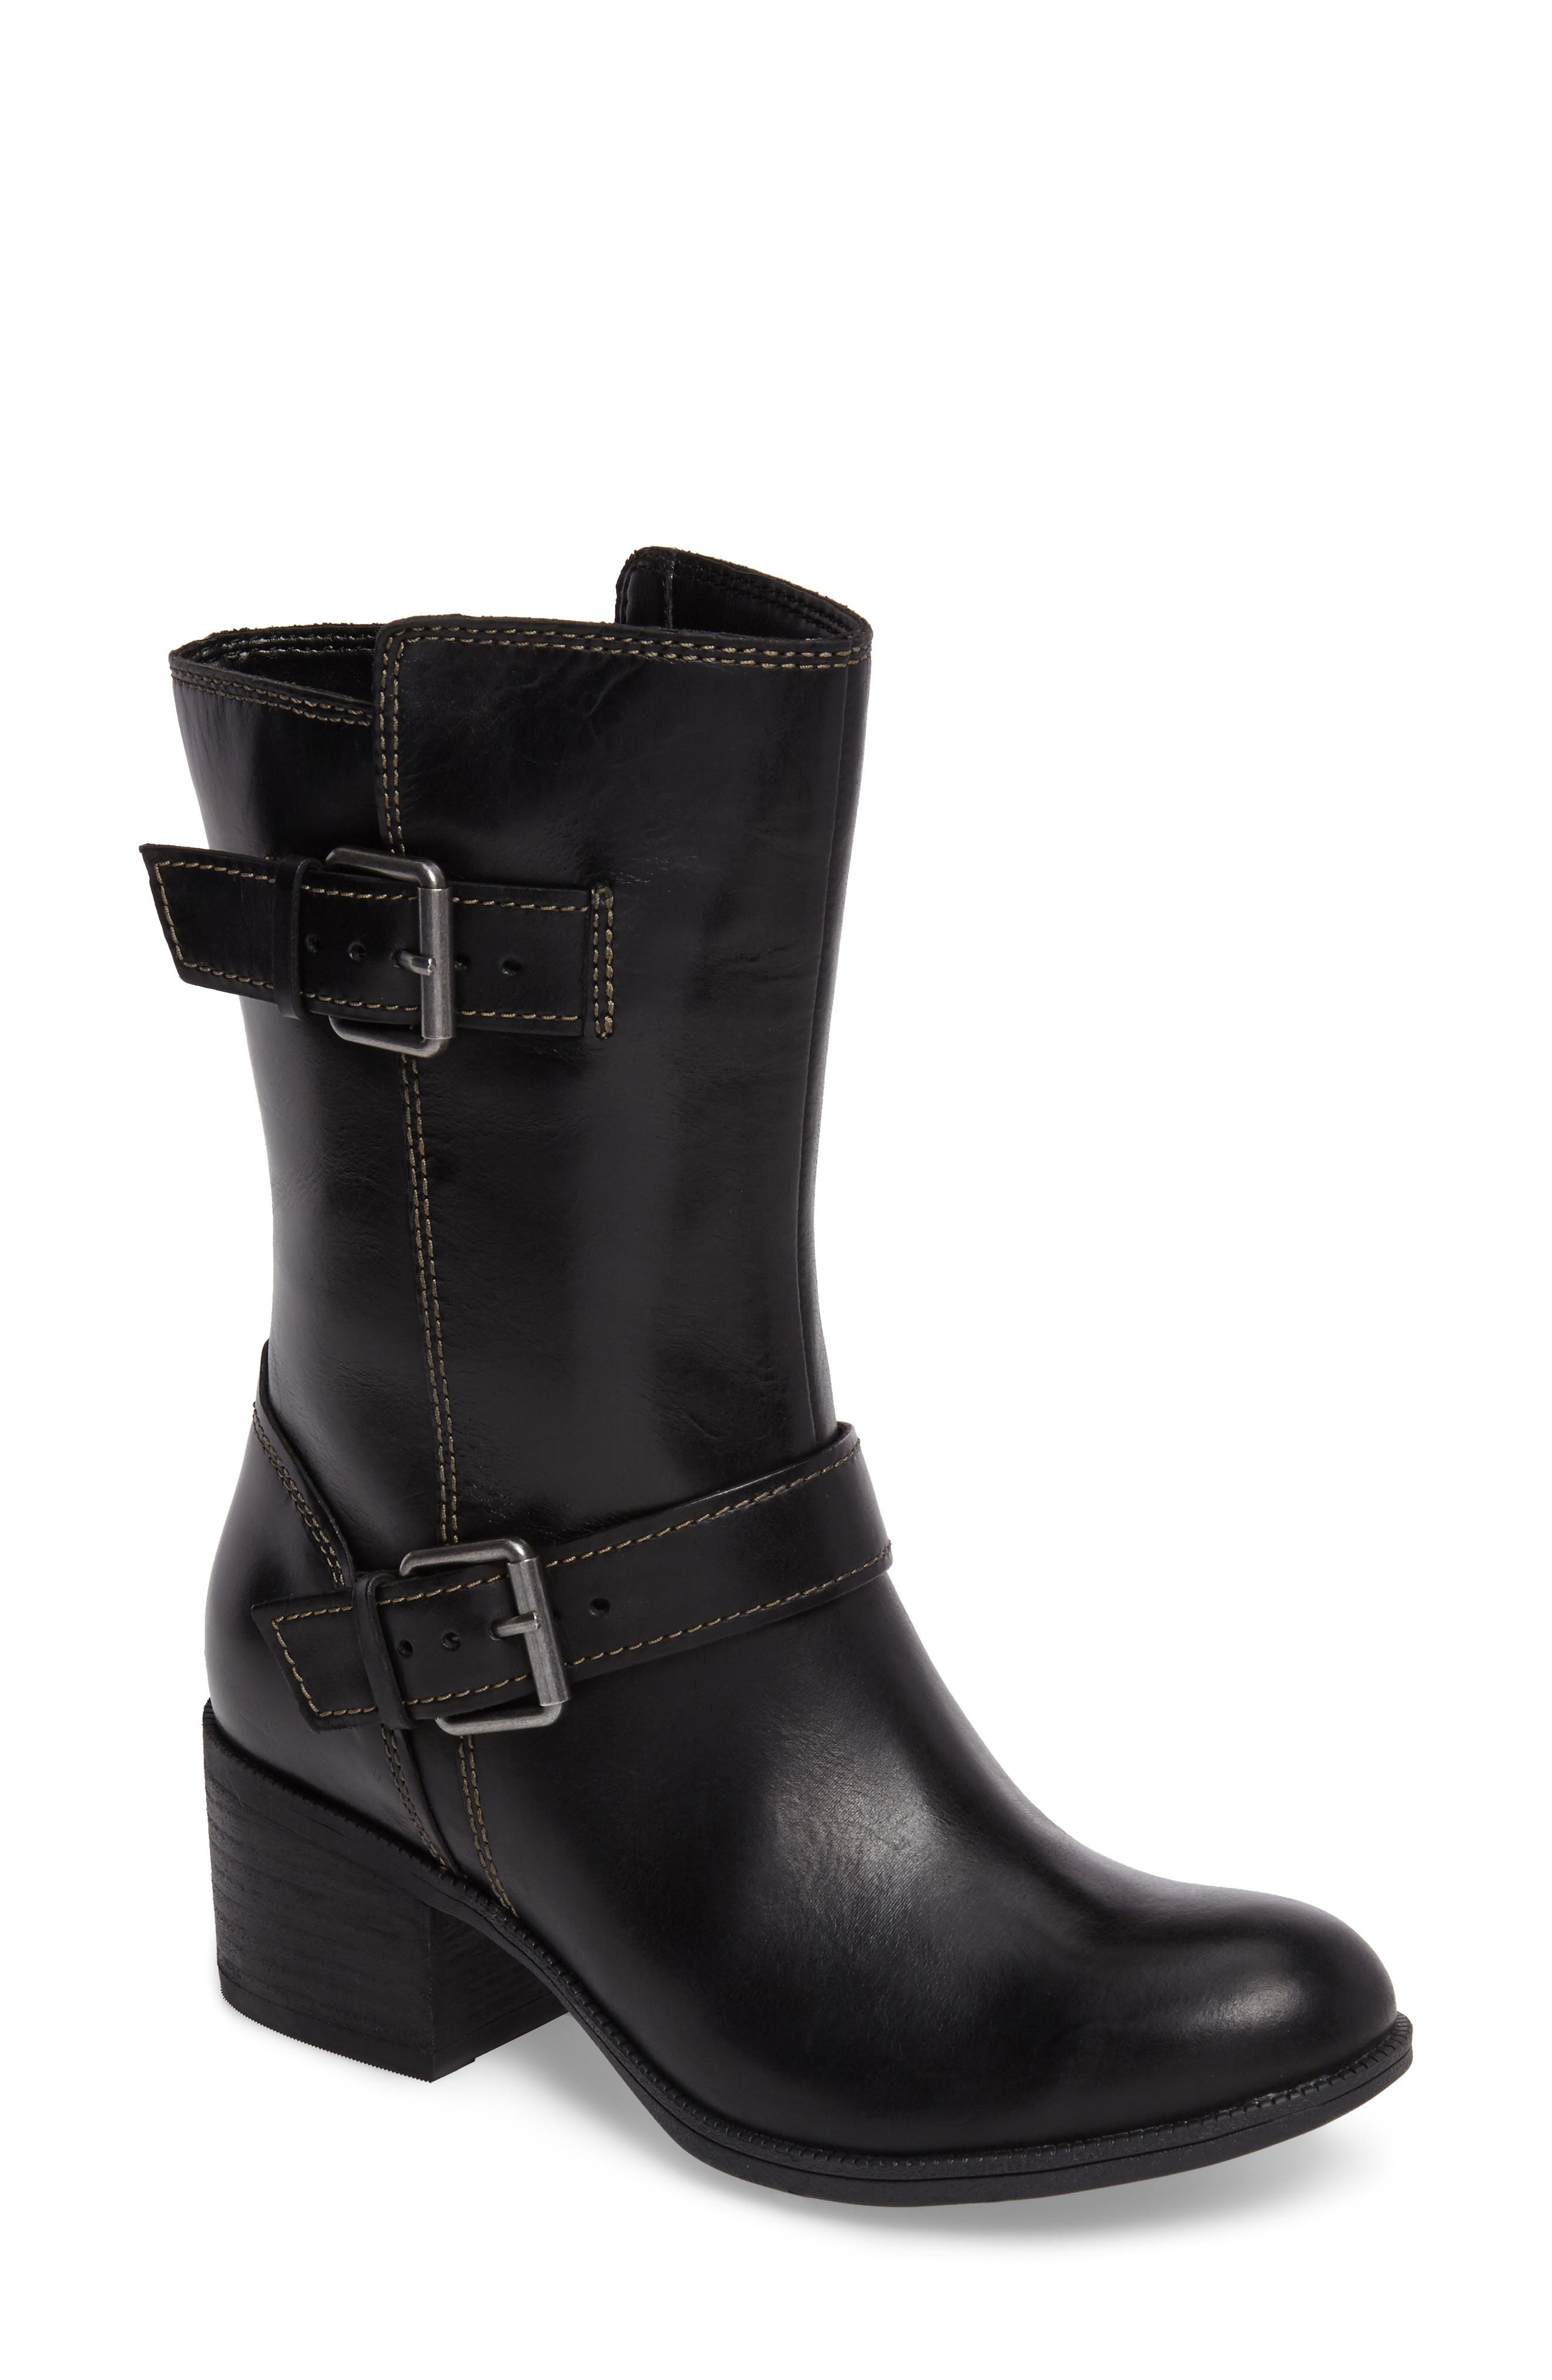 Maypearl Oasis Boot,                         Main,                         color, Black Leather